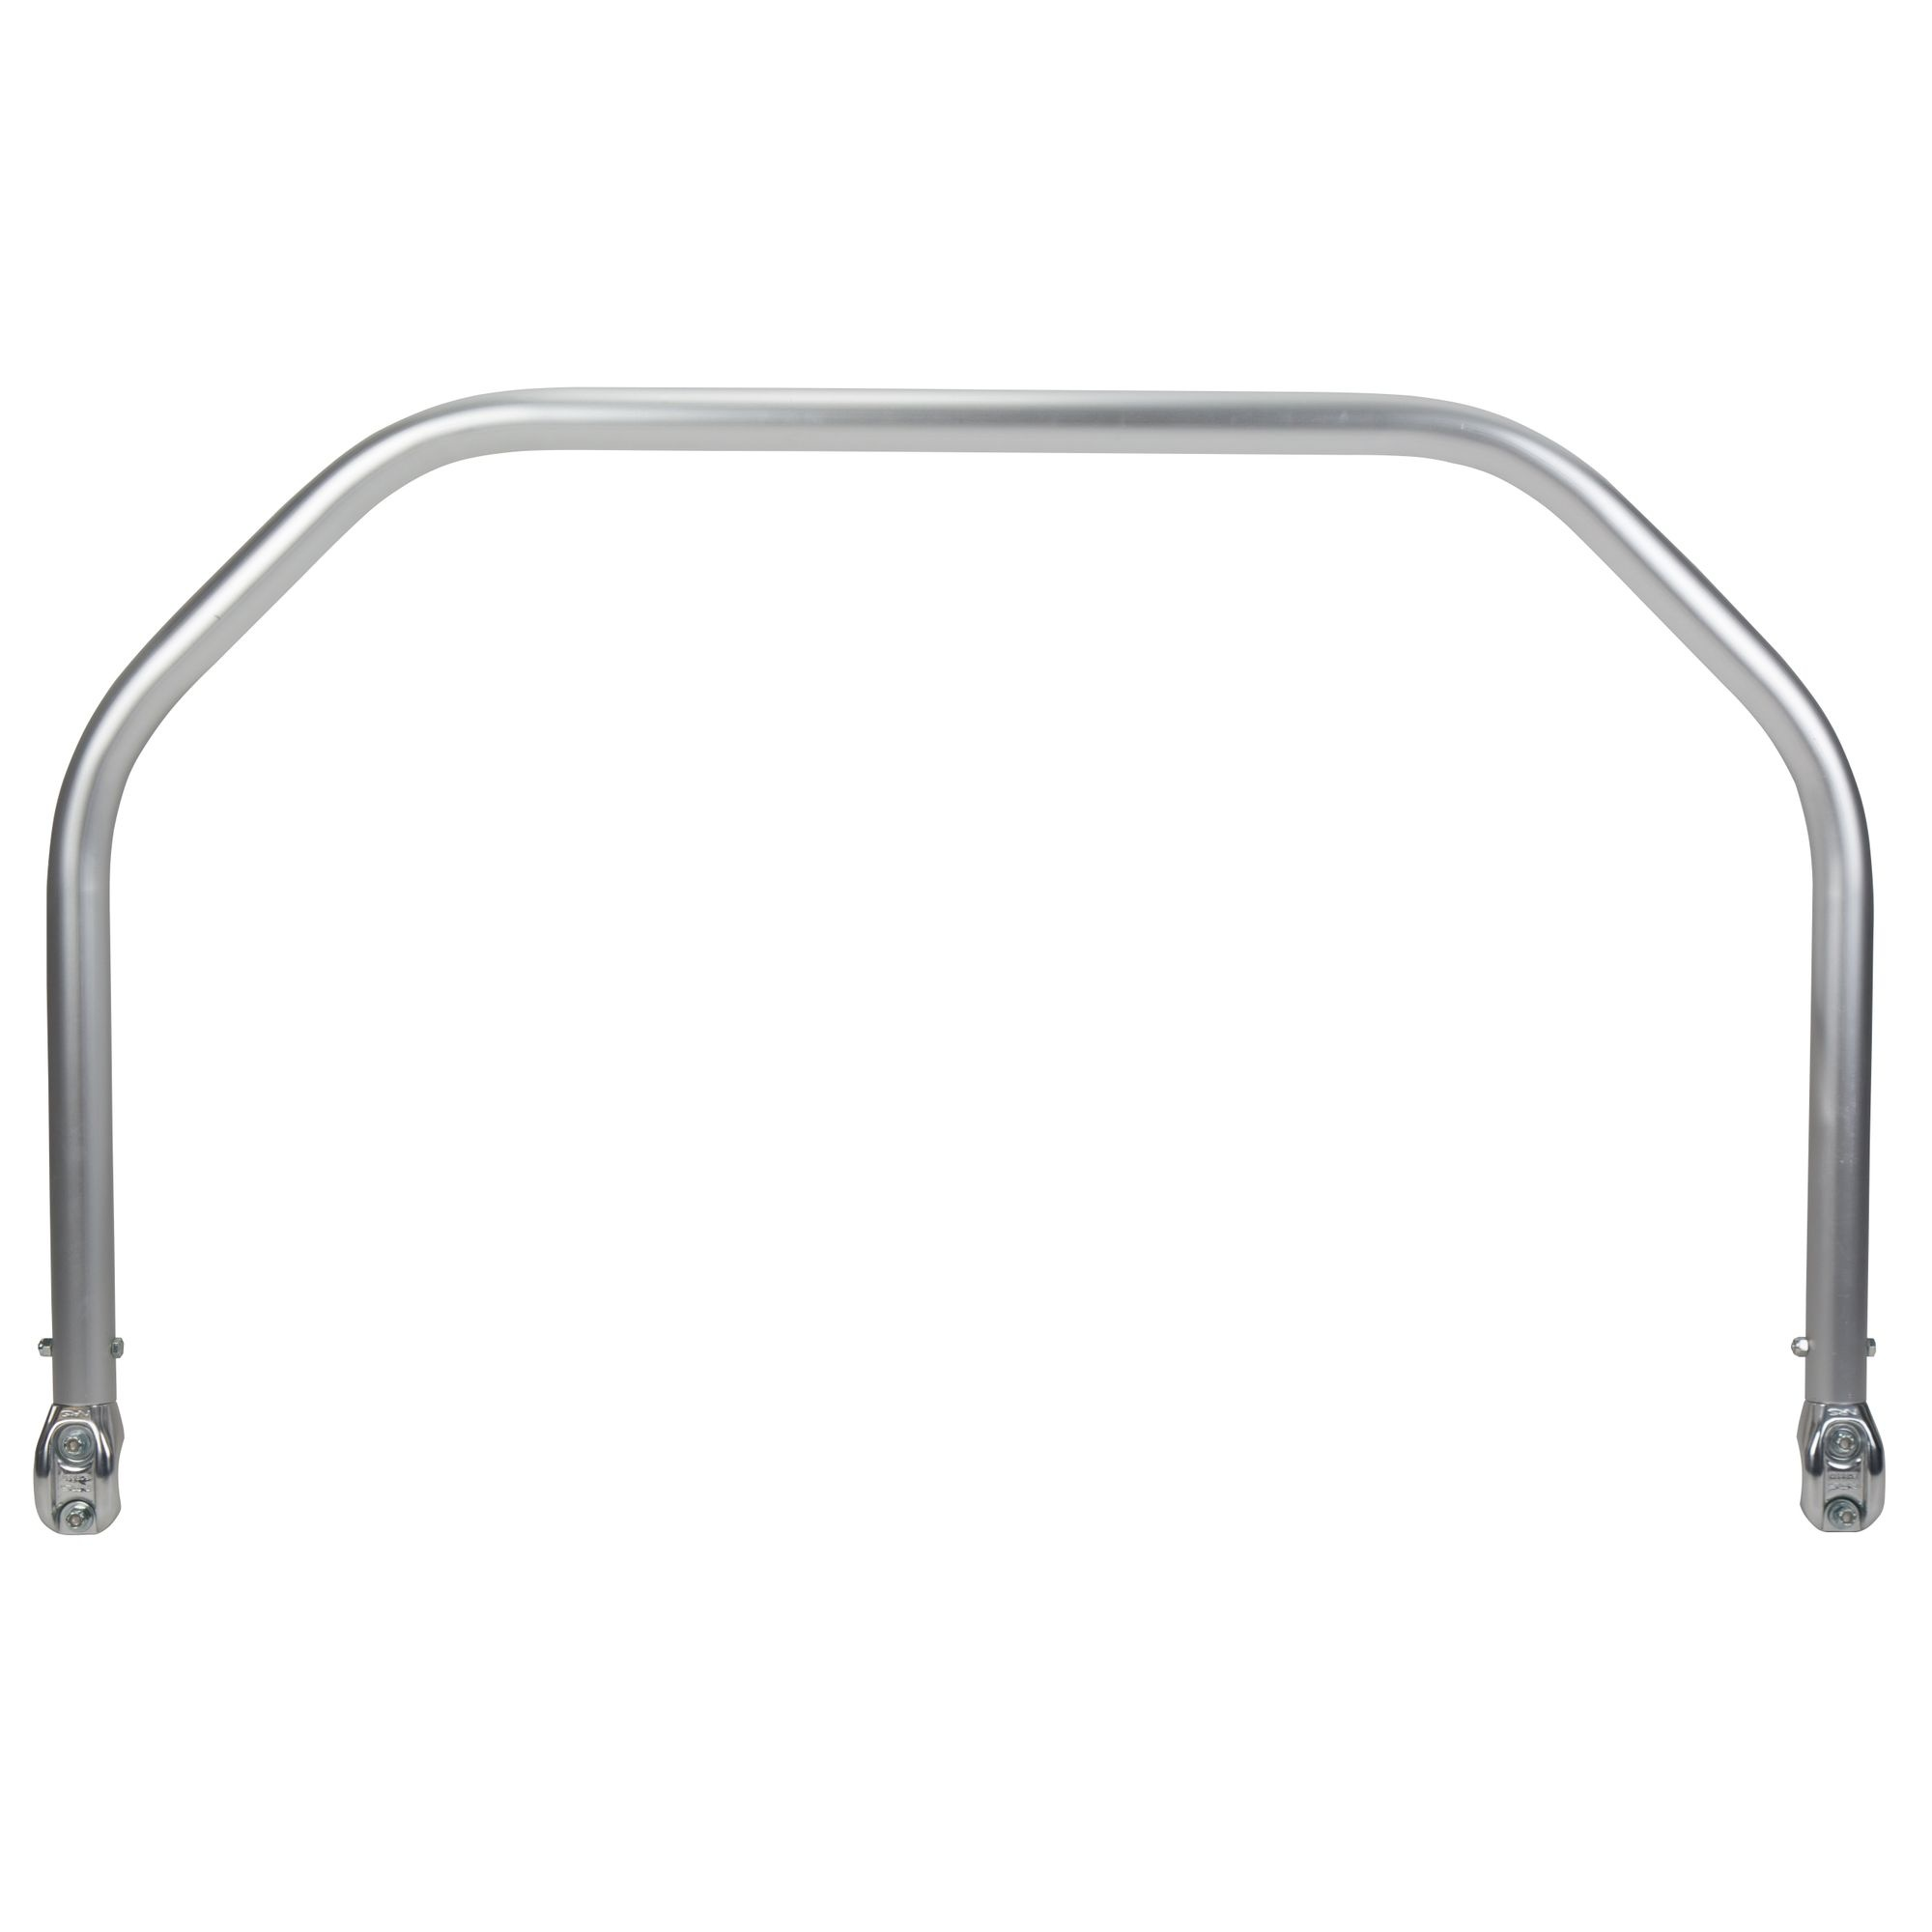 NRS NRS Frame U-Shaped Thigh Bar